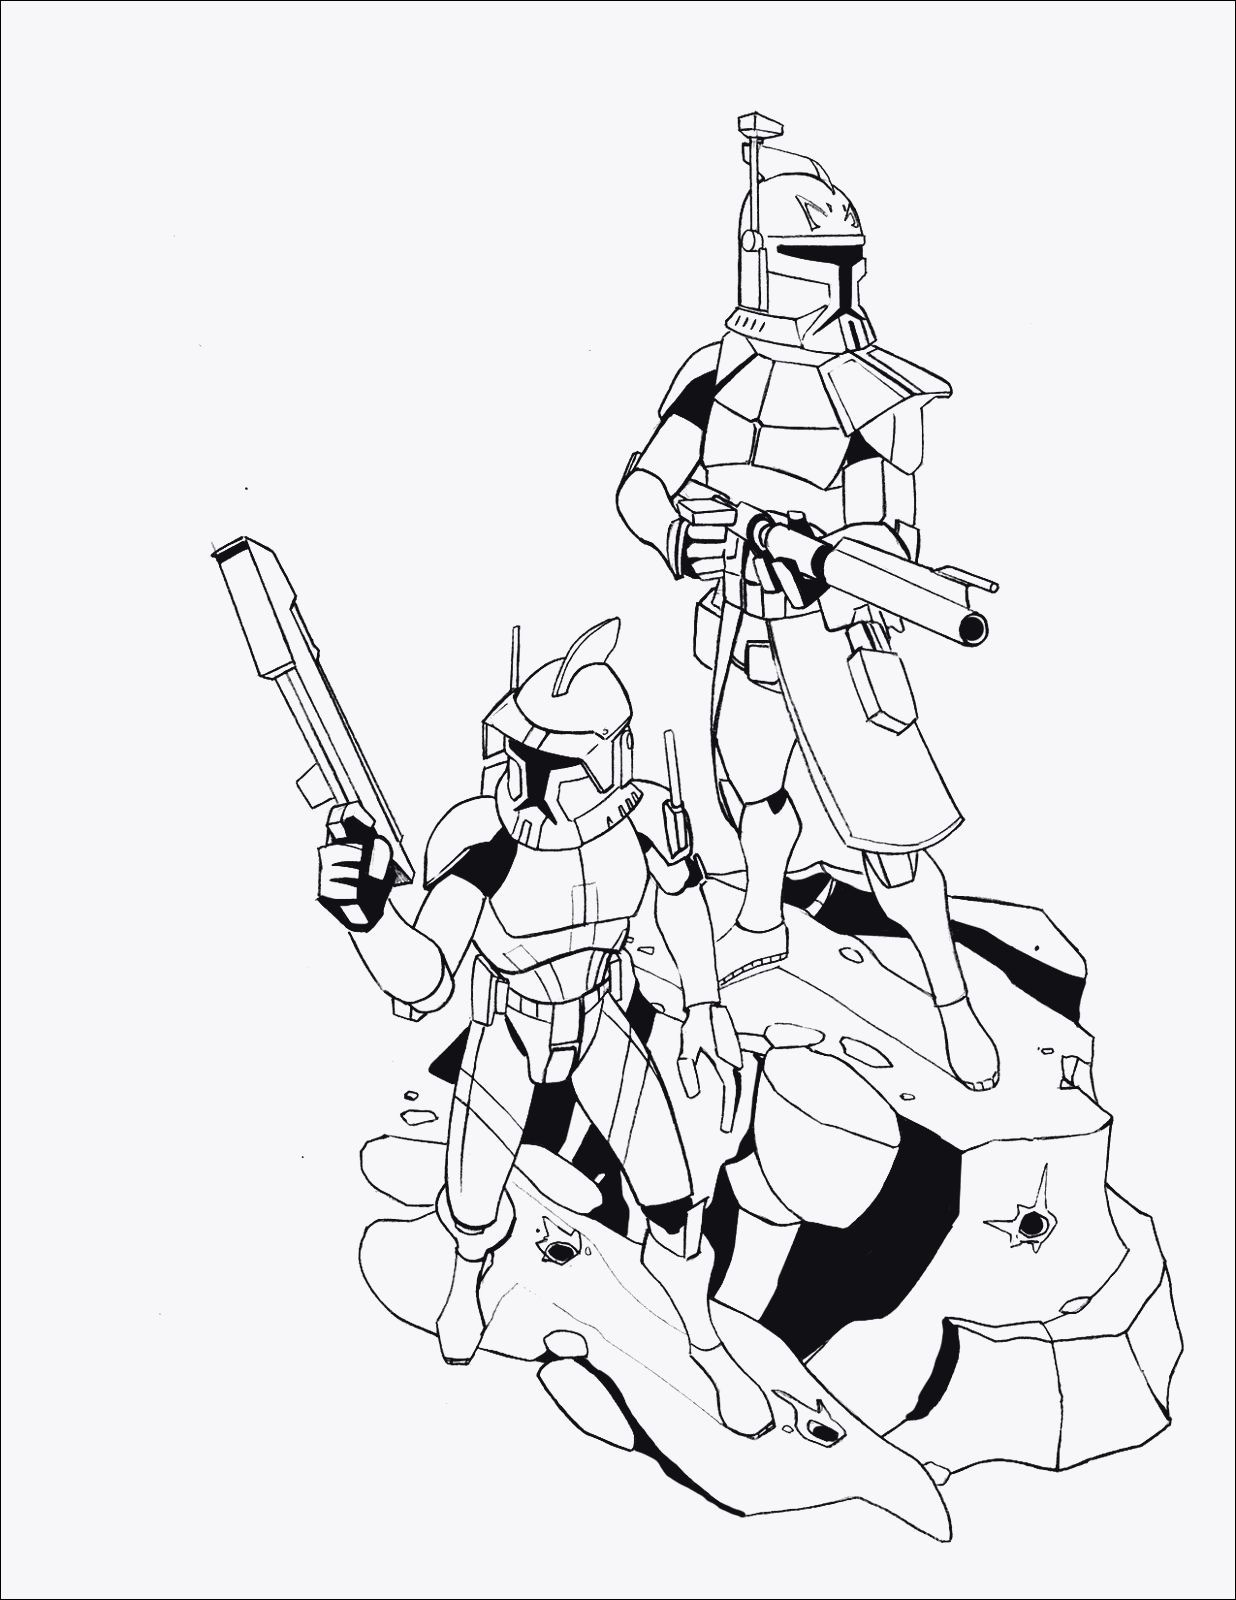 Star Wars the Clone Wars Ausmalbilder Inspirierend the Clone Wars Coloring Pages Star Wars Christmas Coloring Pages Neu Galerie